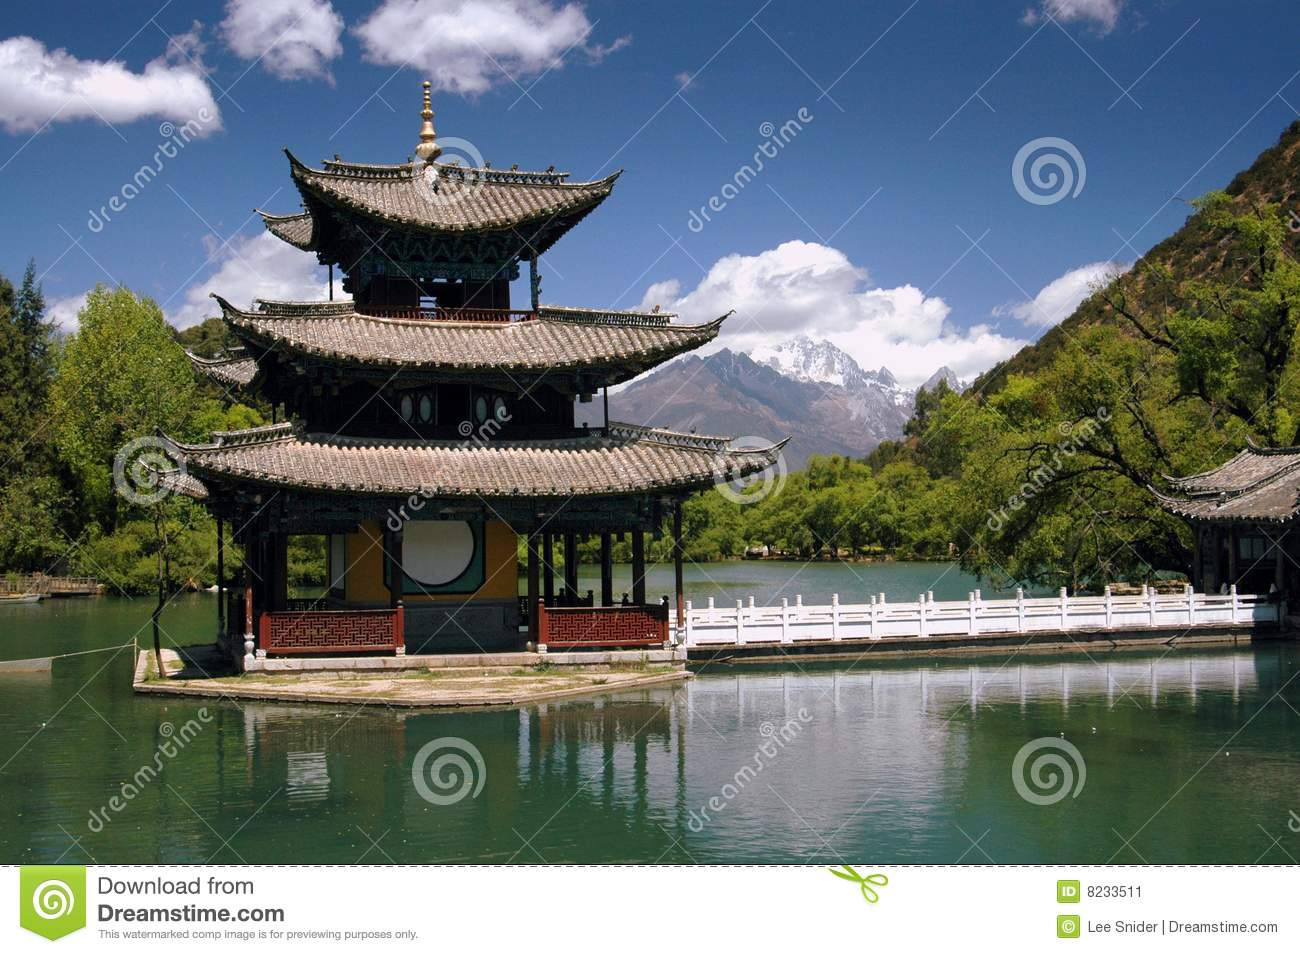 lijiang-china-black-dragon-pool-pagoda-8233511 Pagoda House Plans on star house plans, french eclectic house plans, hotel house plans, china house plans, house house plans, aurora house plans, cathedral house plans, newport house plans, angel house plans, bamboo house plans, lake house plans, phoenix house plans, city house plans, evergreen house plans, art house plans, dogwood house plans, lean to house plans, hill house plans, manor house plans, old west house plans,